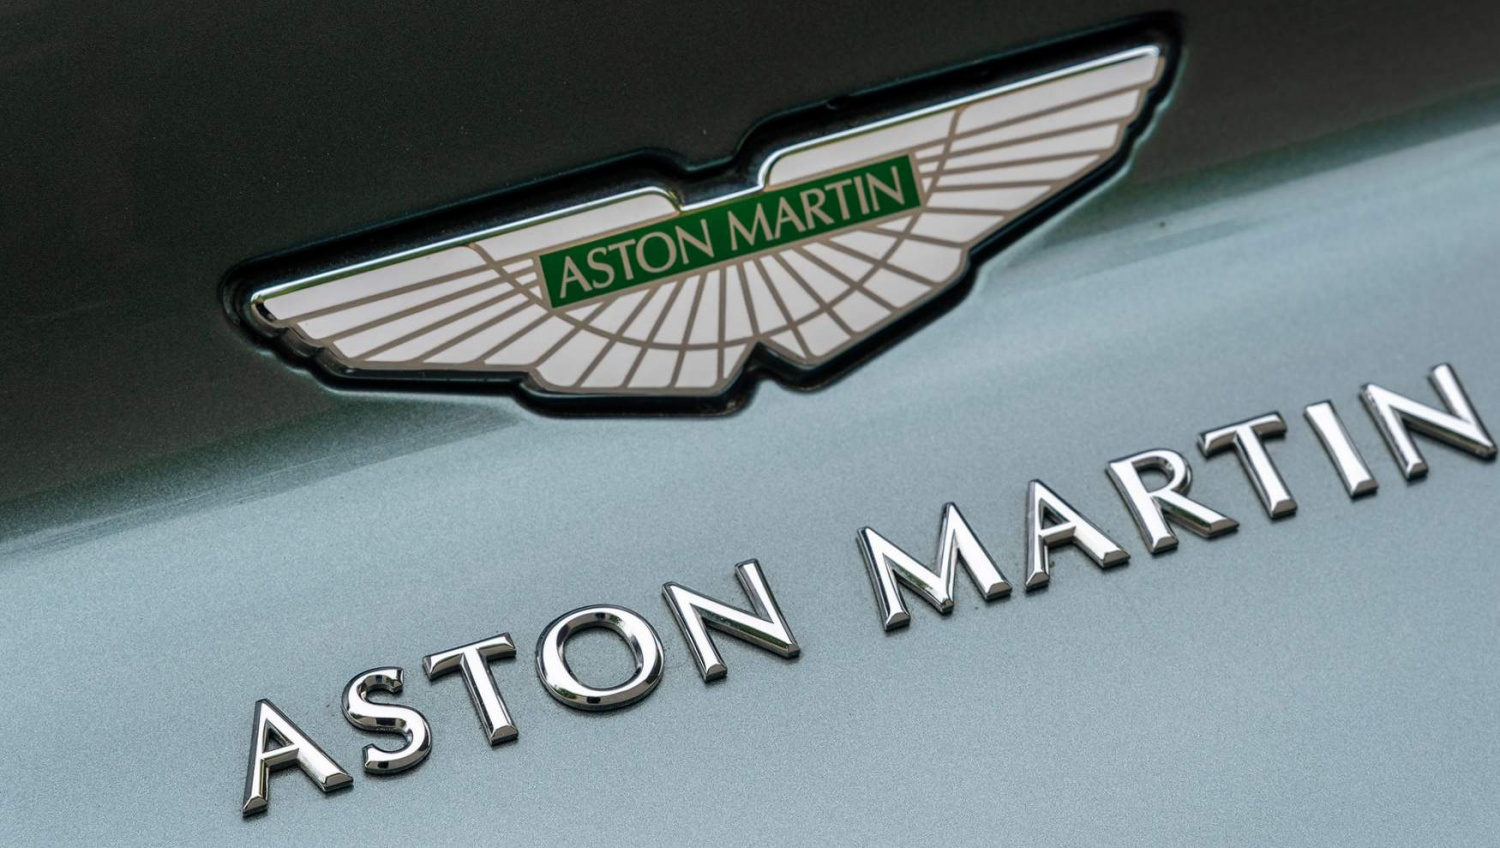 Racing Point F 1 team to become Aston Martin from 2021 after Stroll buy-in